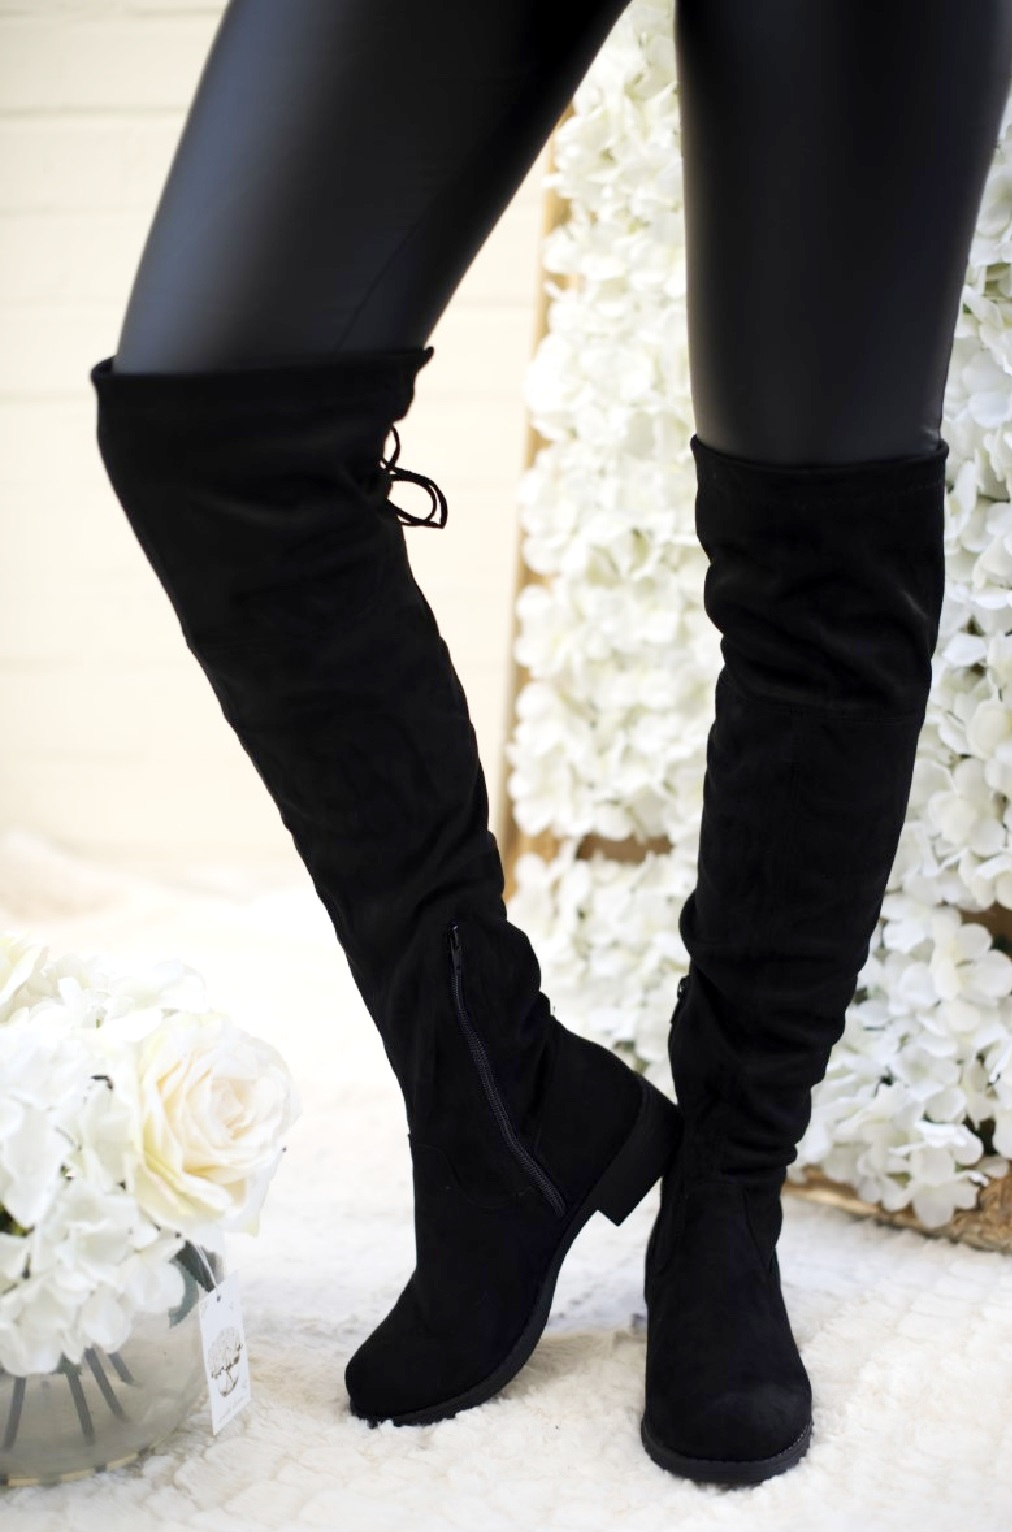 LADIES WOMENS OVER THE KNEE HIGH STUD FUR FLAT LOW HEEL GOLD TRIM BOOTS SIZE 3-8